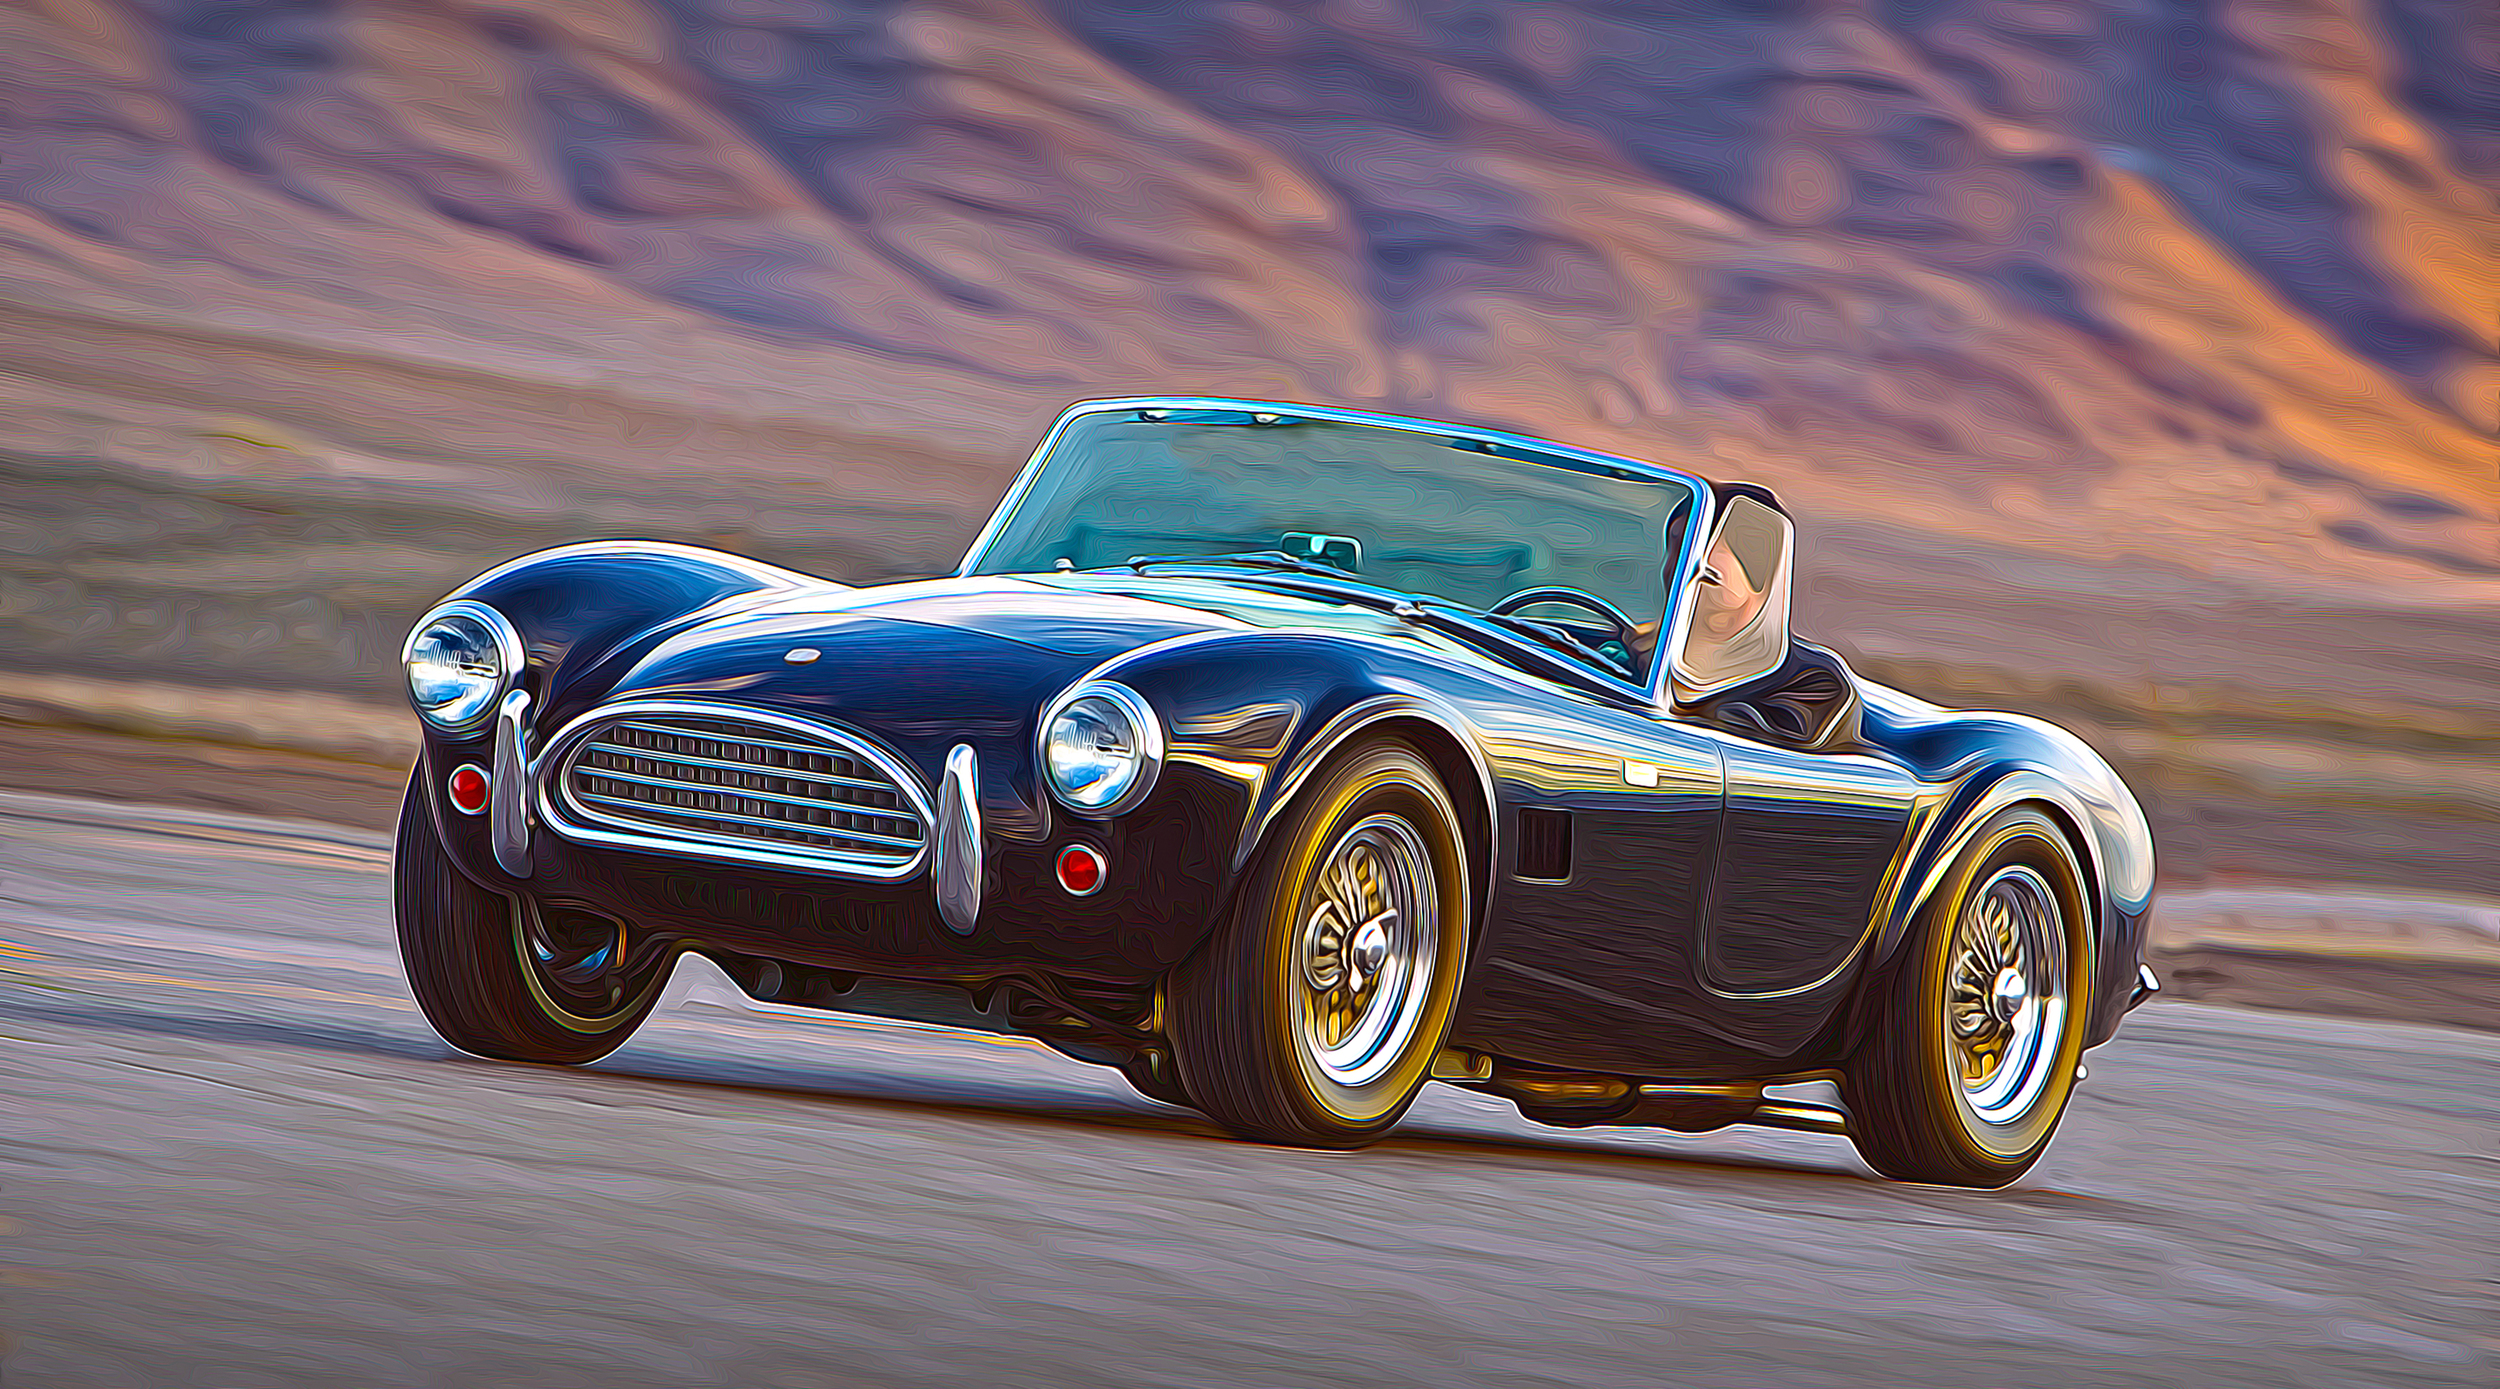 50th Anniversary Cobra in Action